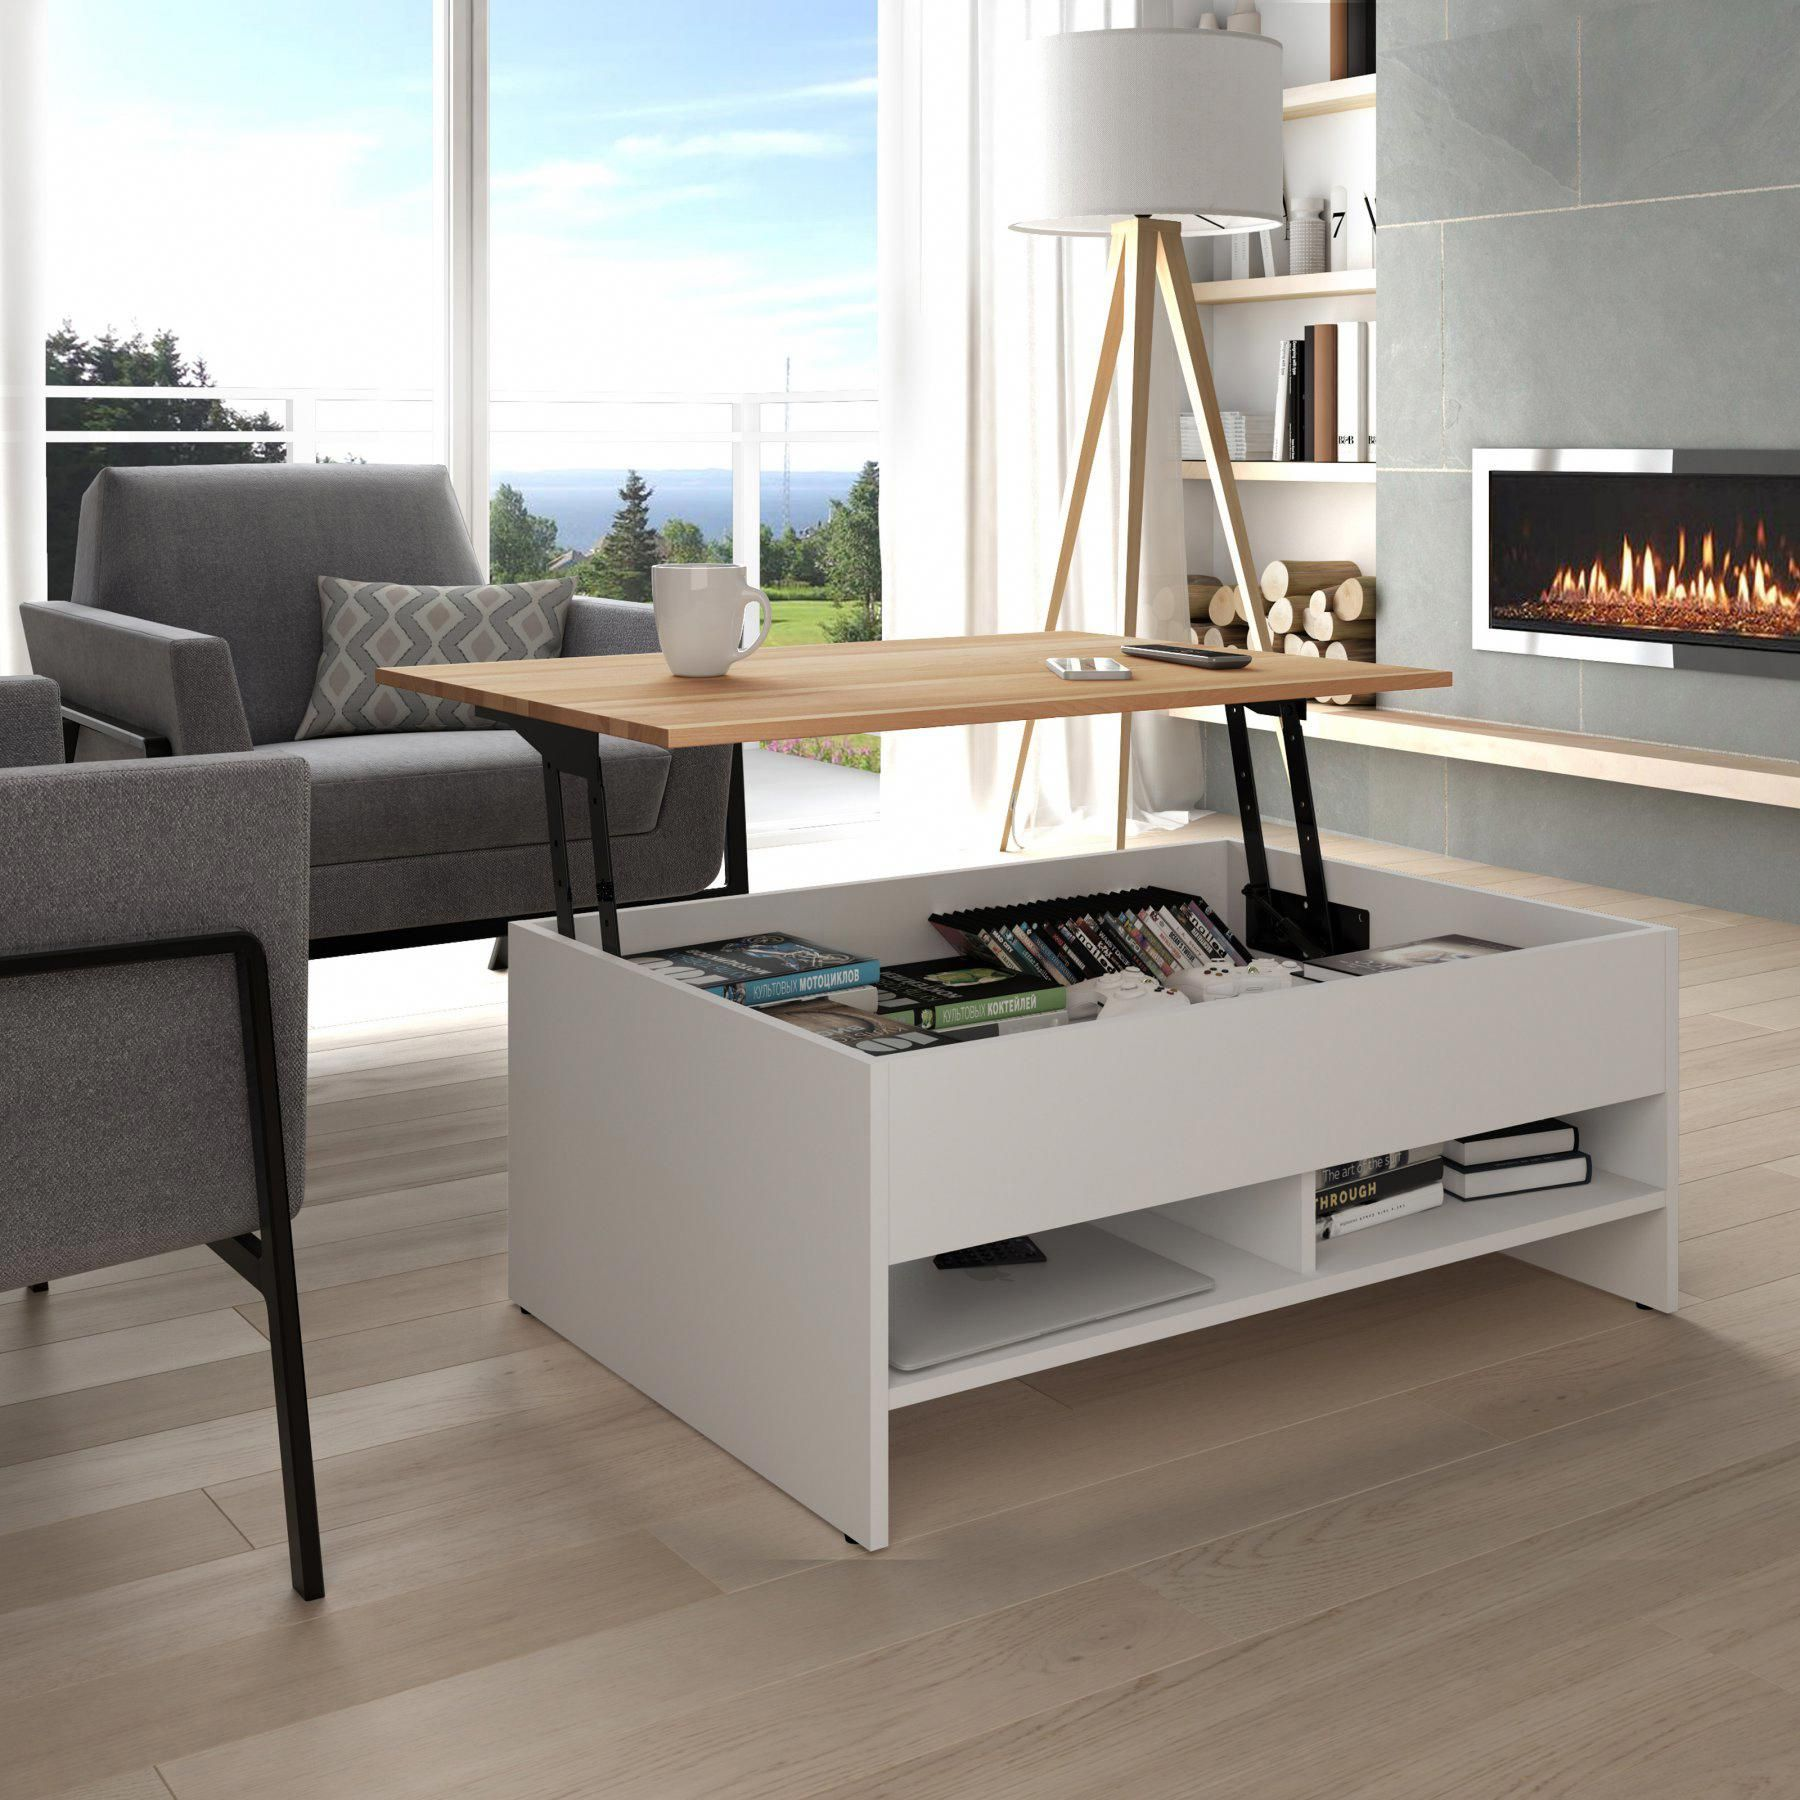 bestar small space storage coffee table with lift top 16159 1117 small spaces furniture for on kitchen organization for small spaces id=44158